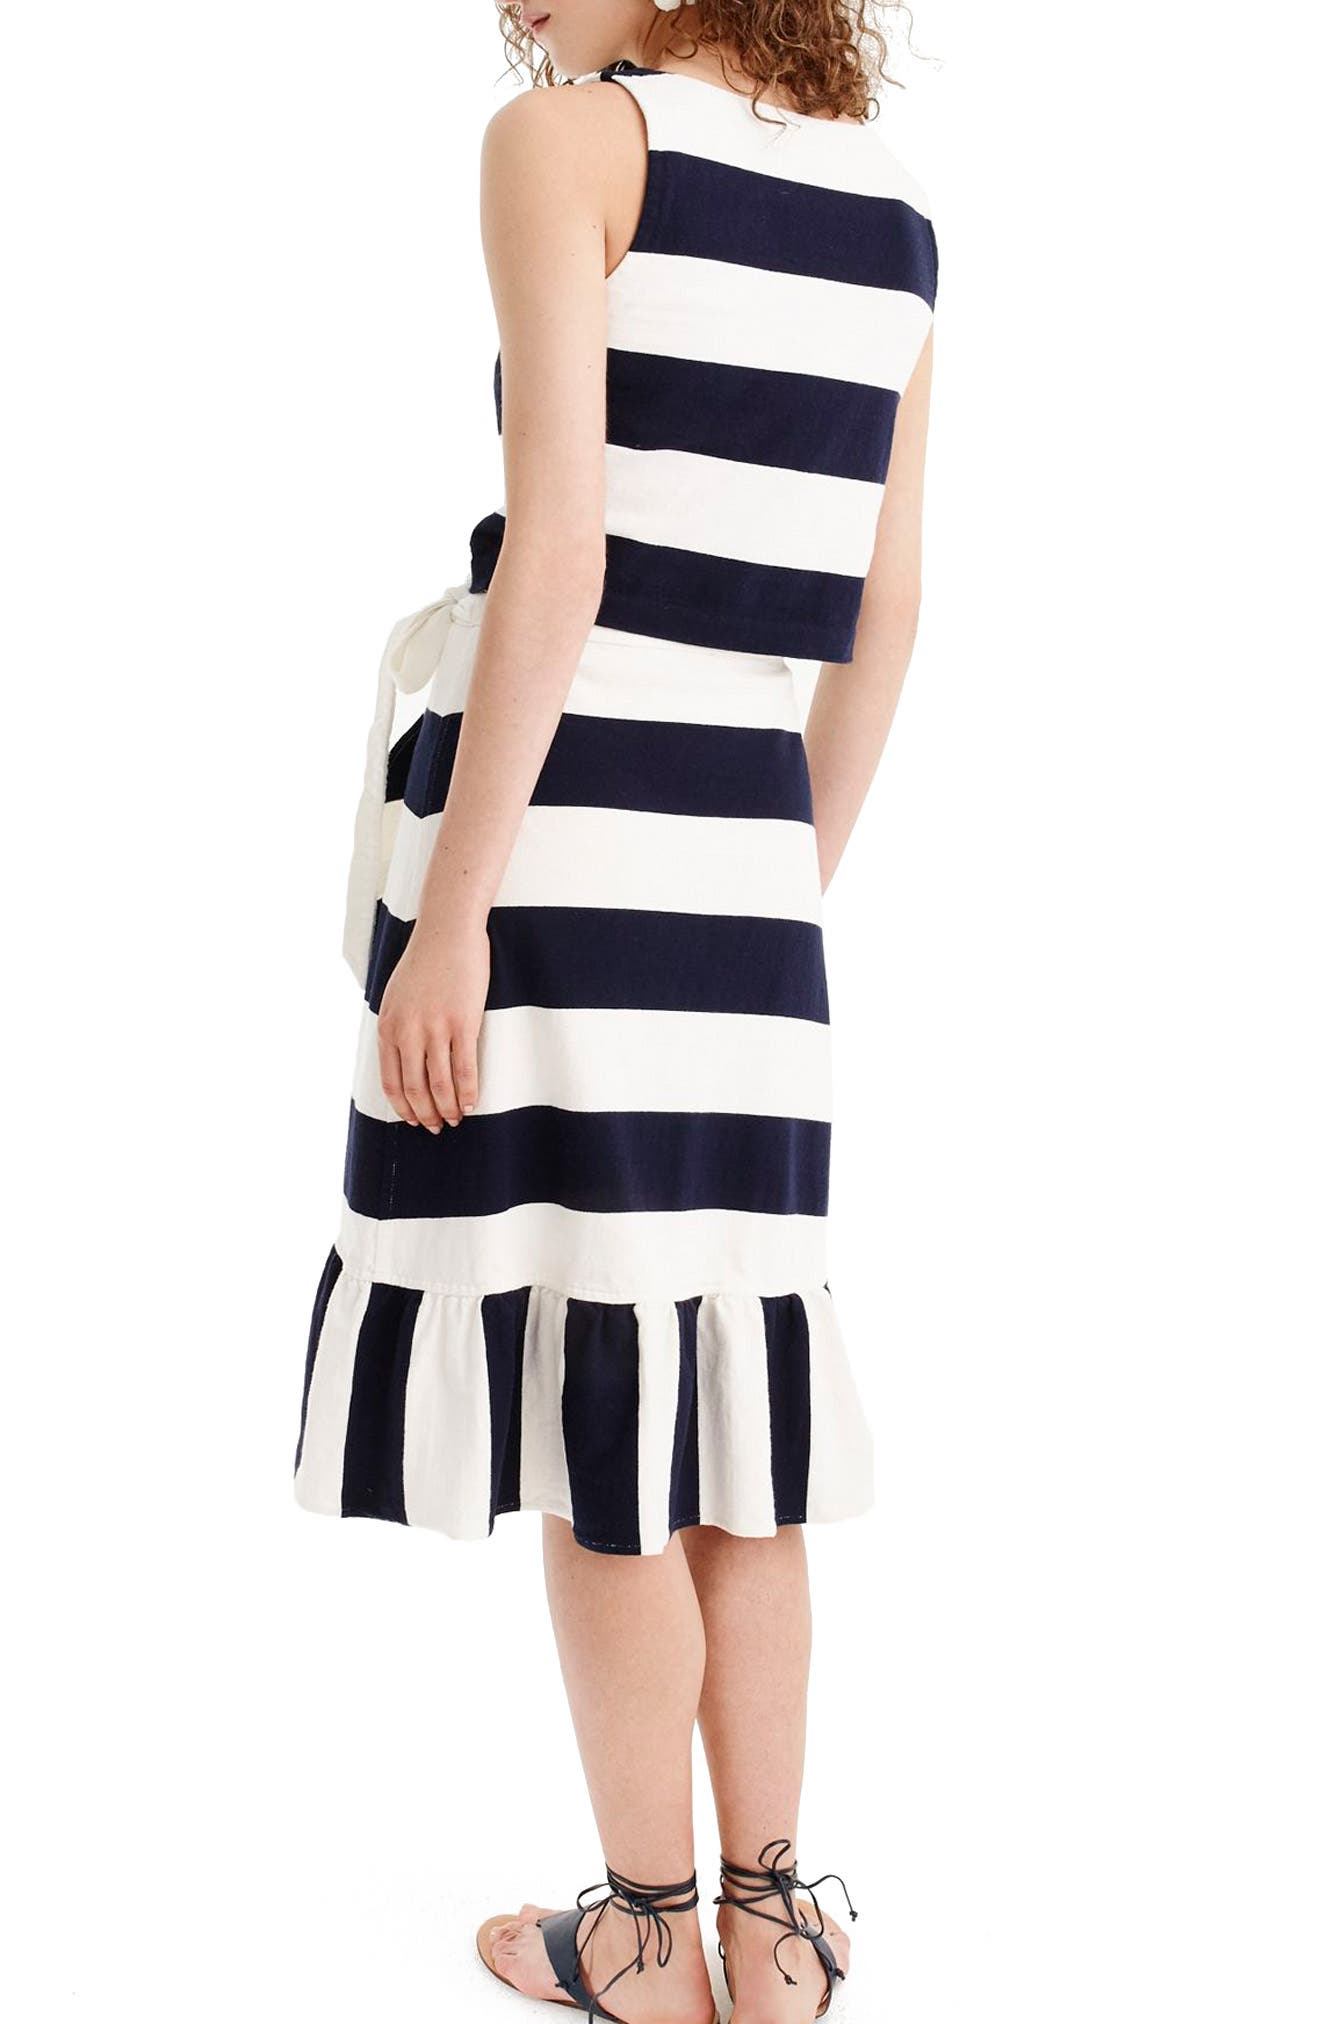 Rugby Knit Wrap Skirt,                             Alternate thumbnail 2, color,                             Navy Ivory